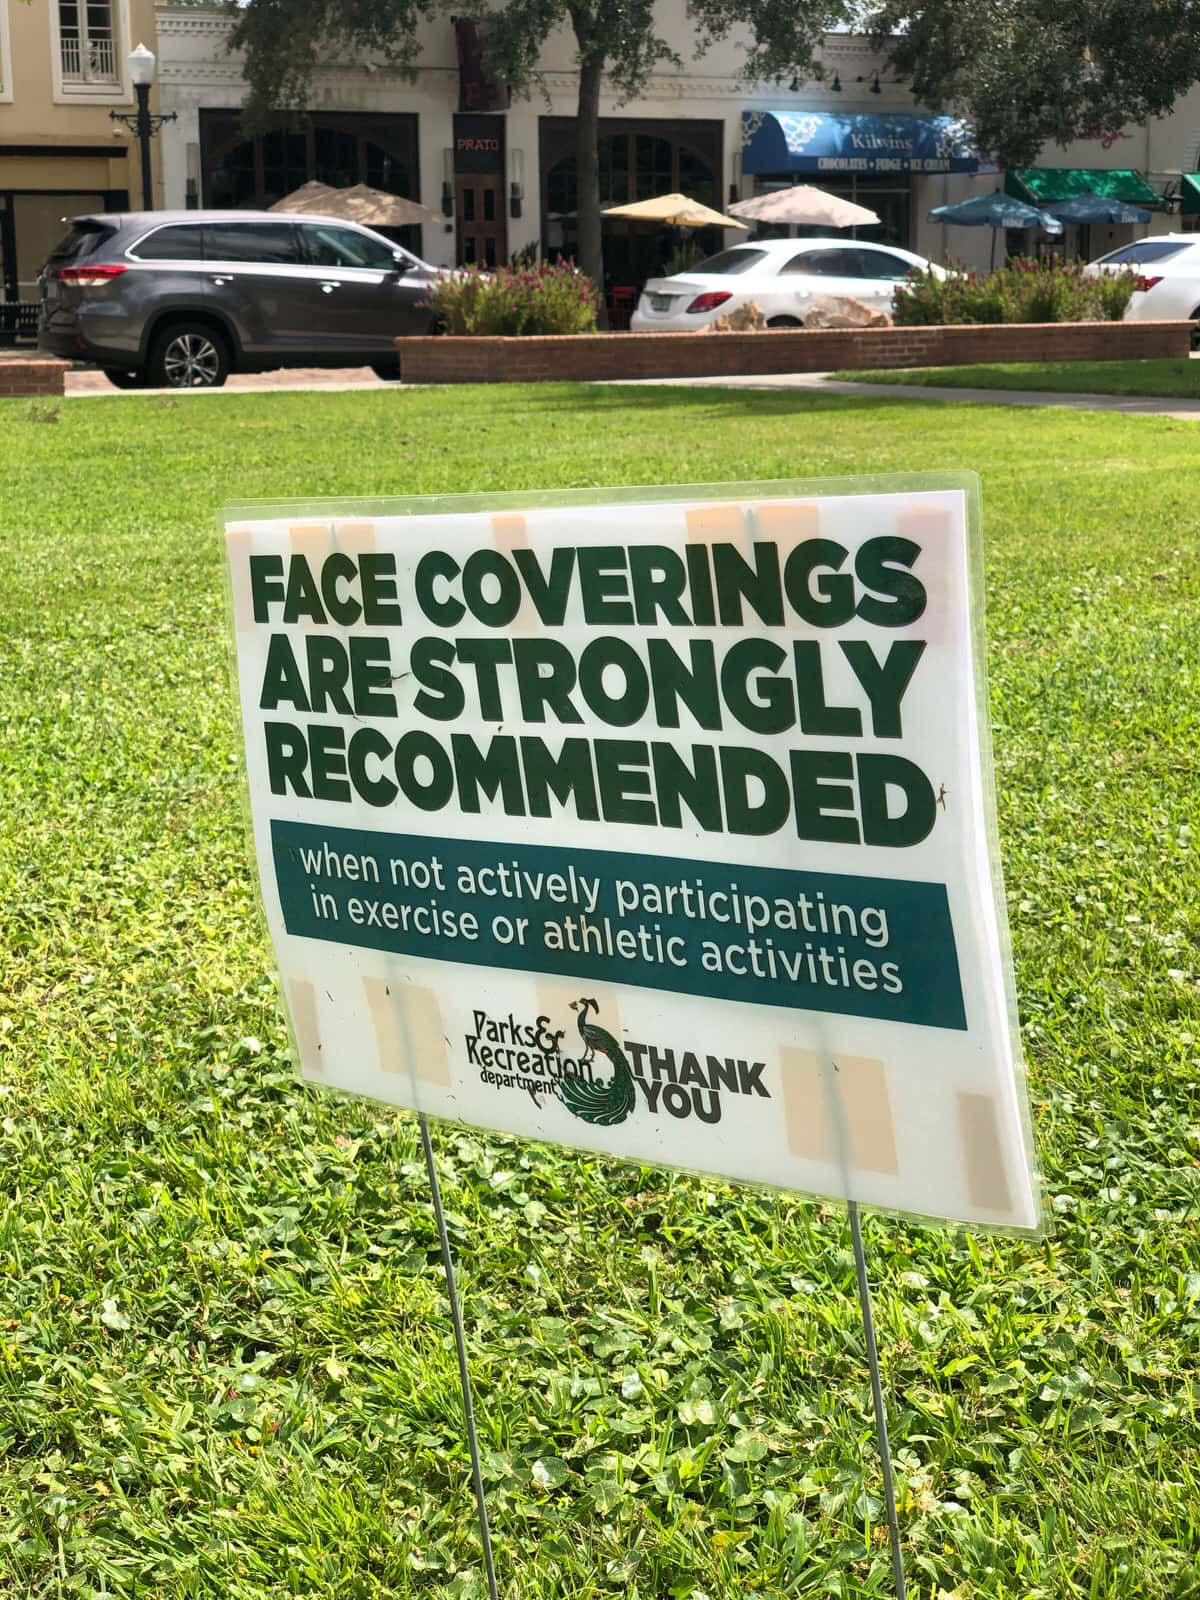 Face Covering Recommended sign in Central Park in WInter Park Florida